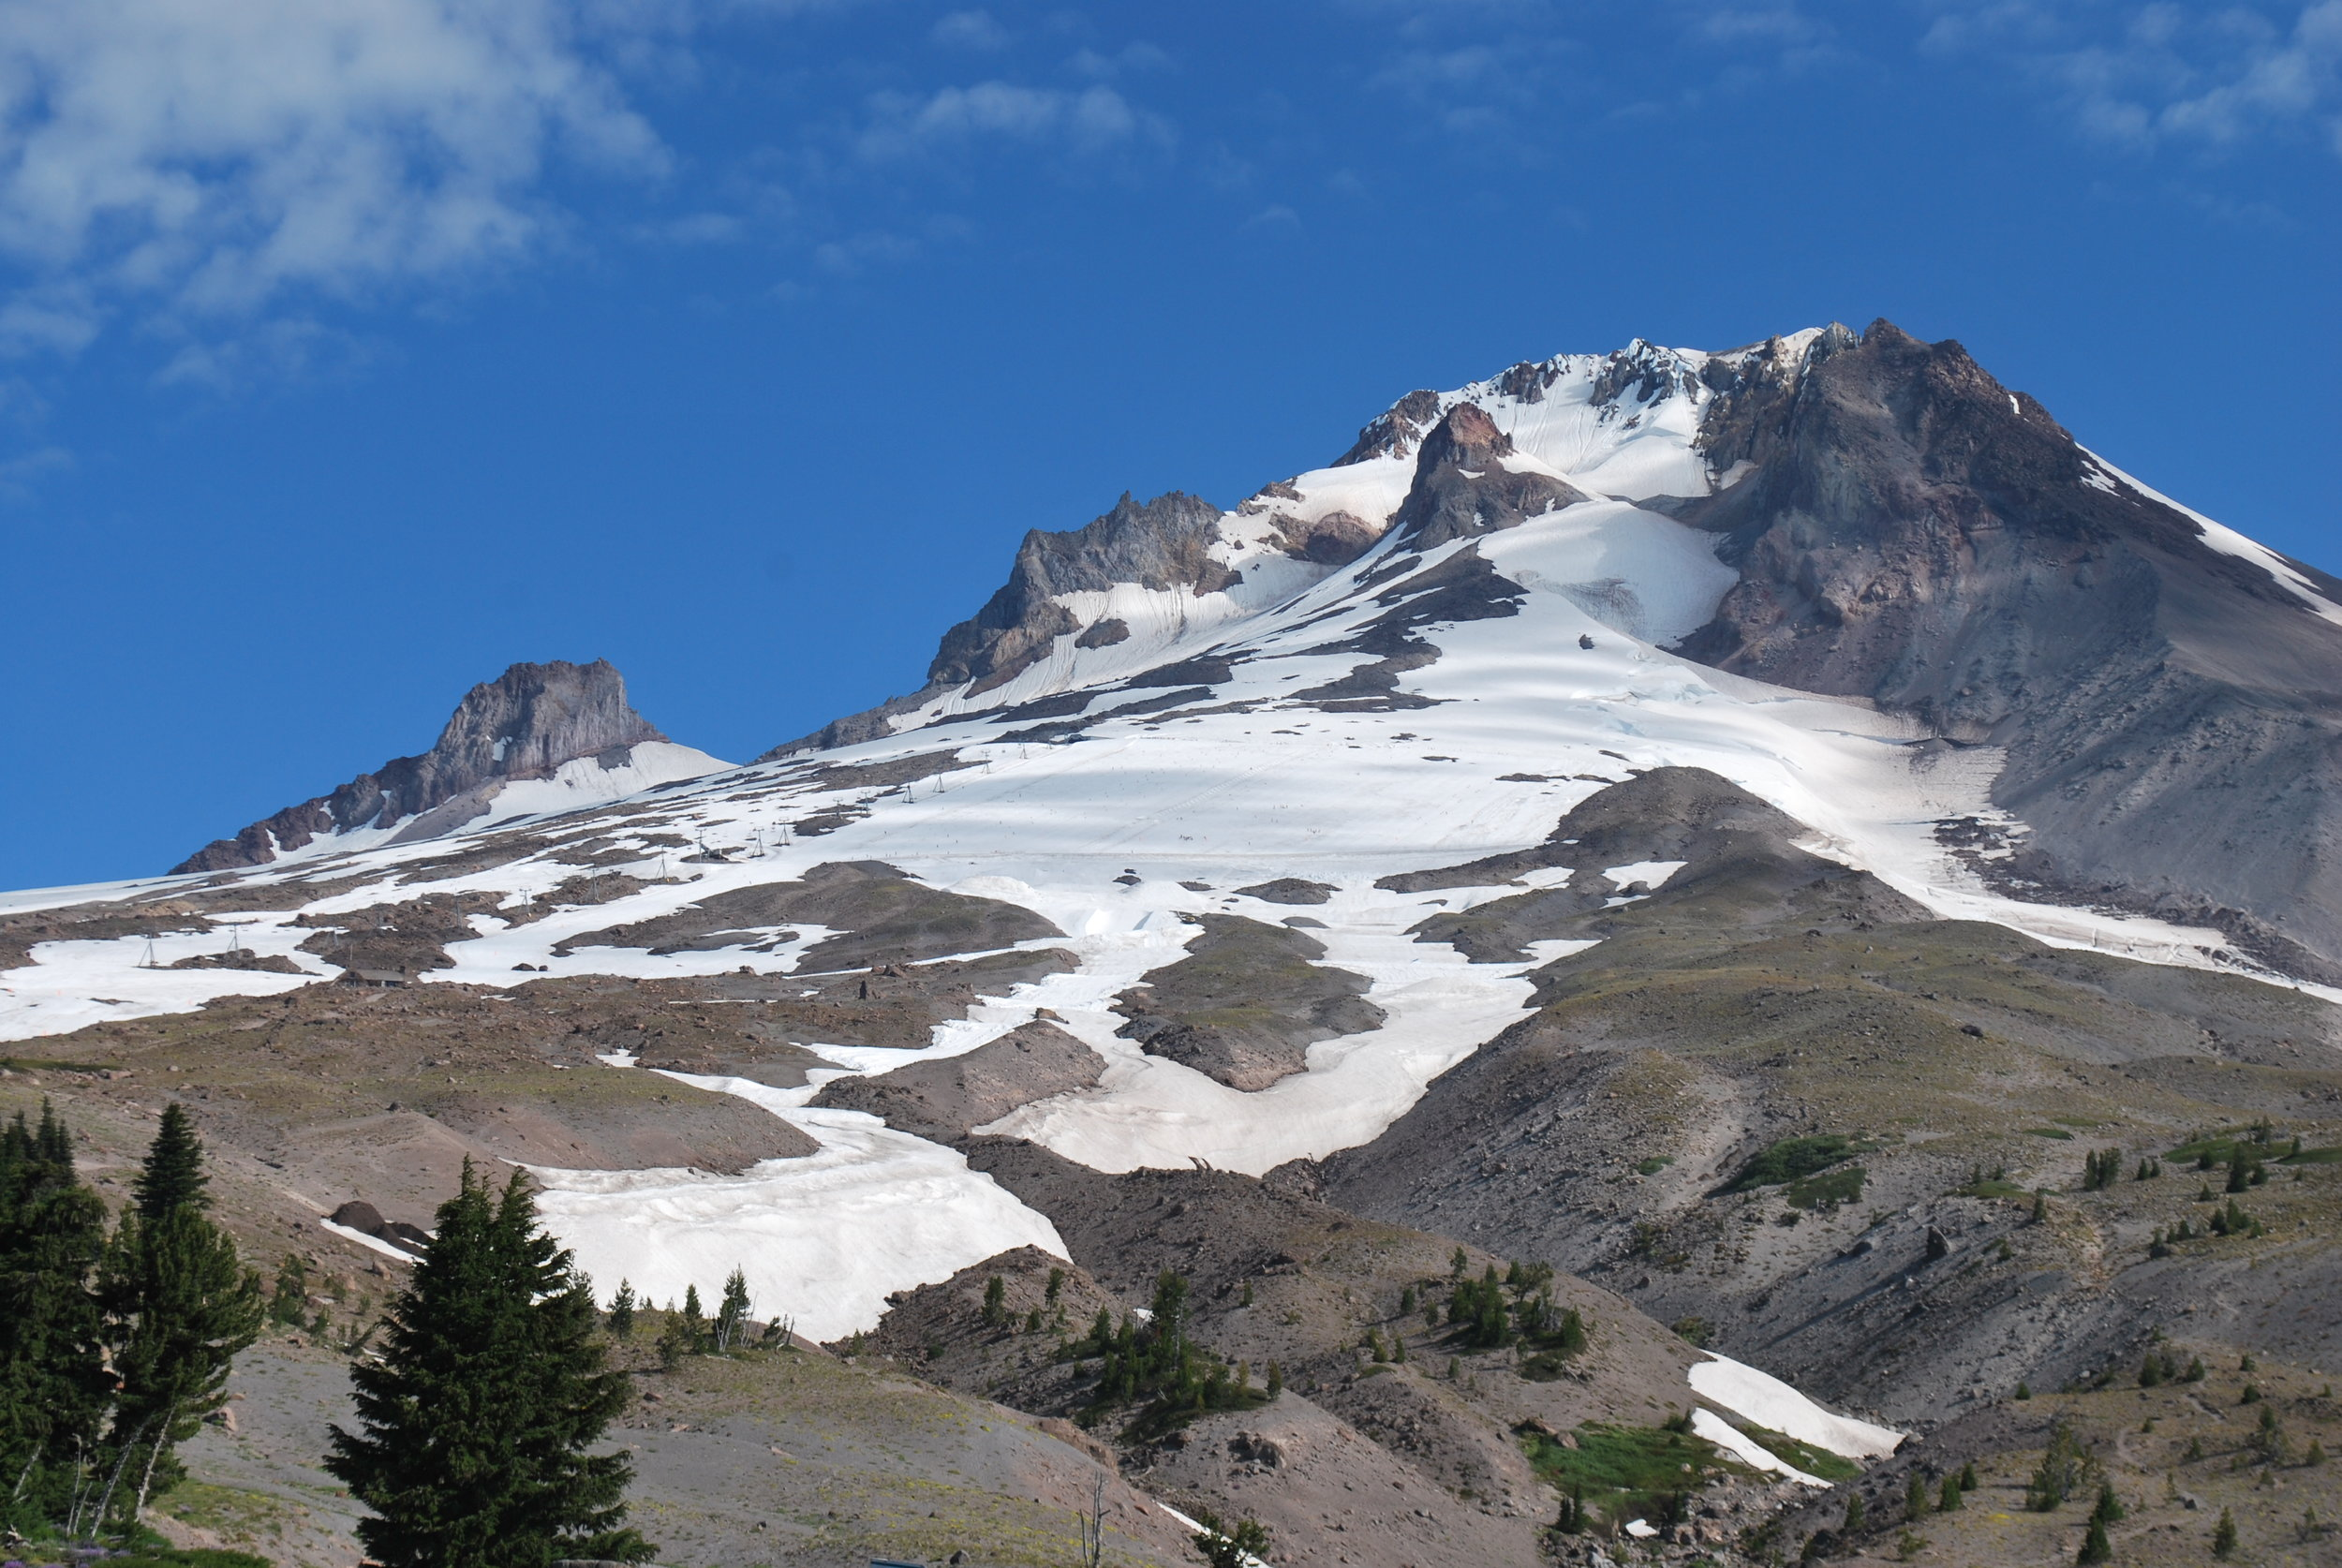 This image from Snowbrains.com shows the summer snow fields up at Timberline Lodge Ski Area. The Palmer Glacier (square-shaped) is very evident at the top of the two canyons. There is actually more snow up there now than this picture shows (this was later in a past summer). Image Courtesy: Snowbrains.com